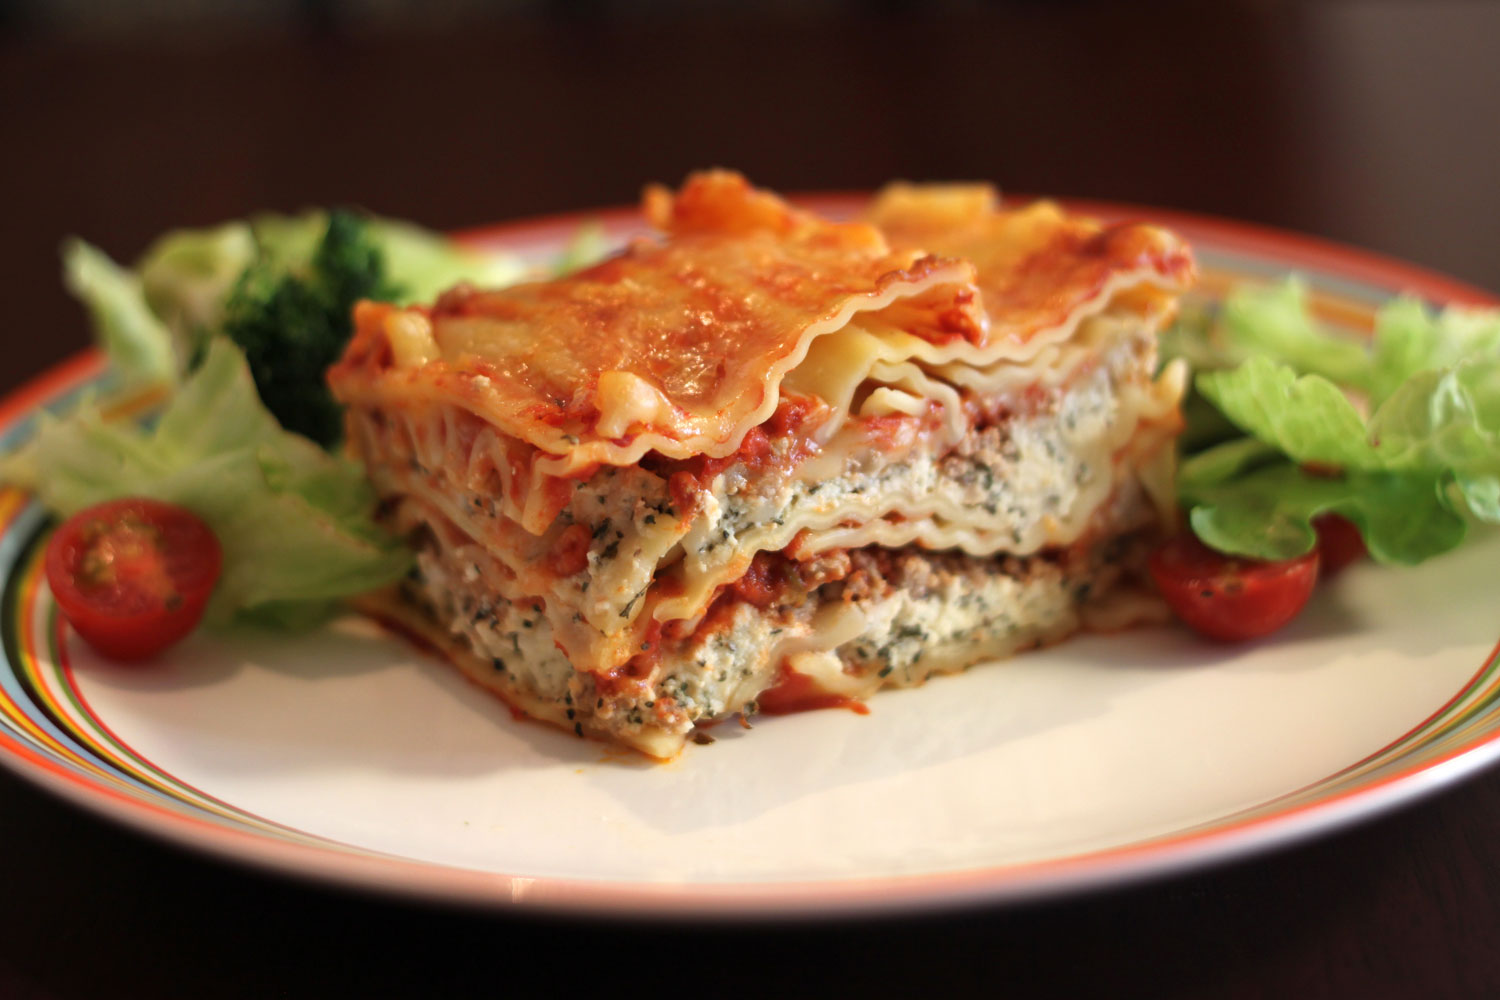 Catering - Lasagna with salad on a plate